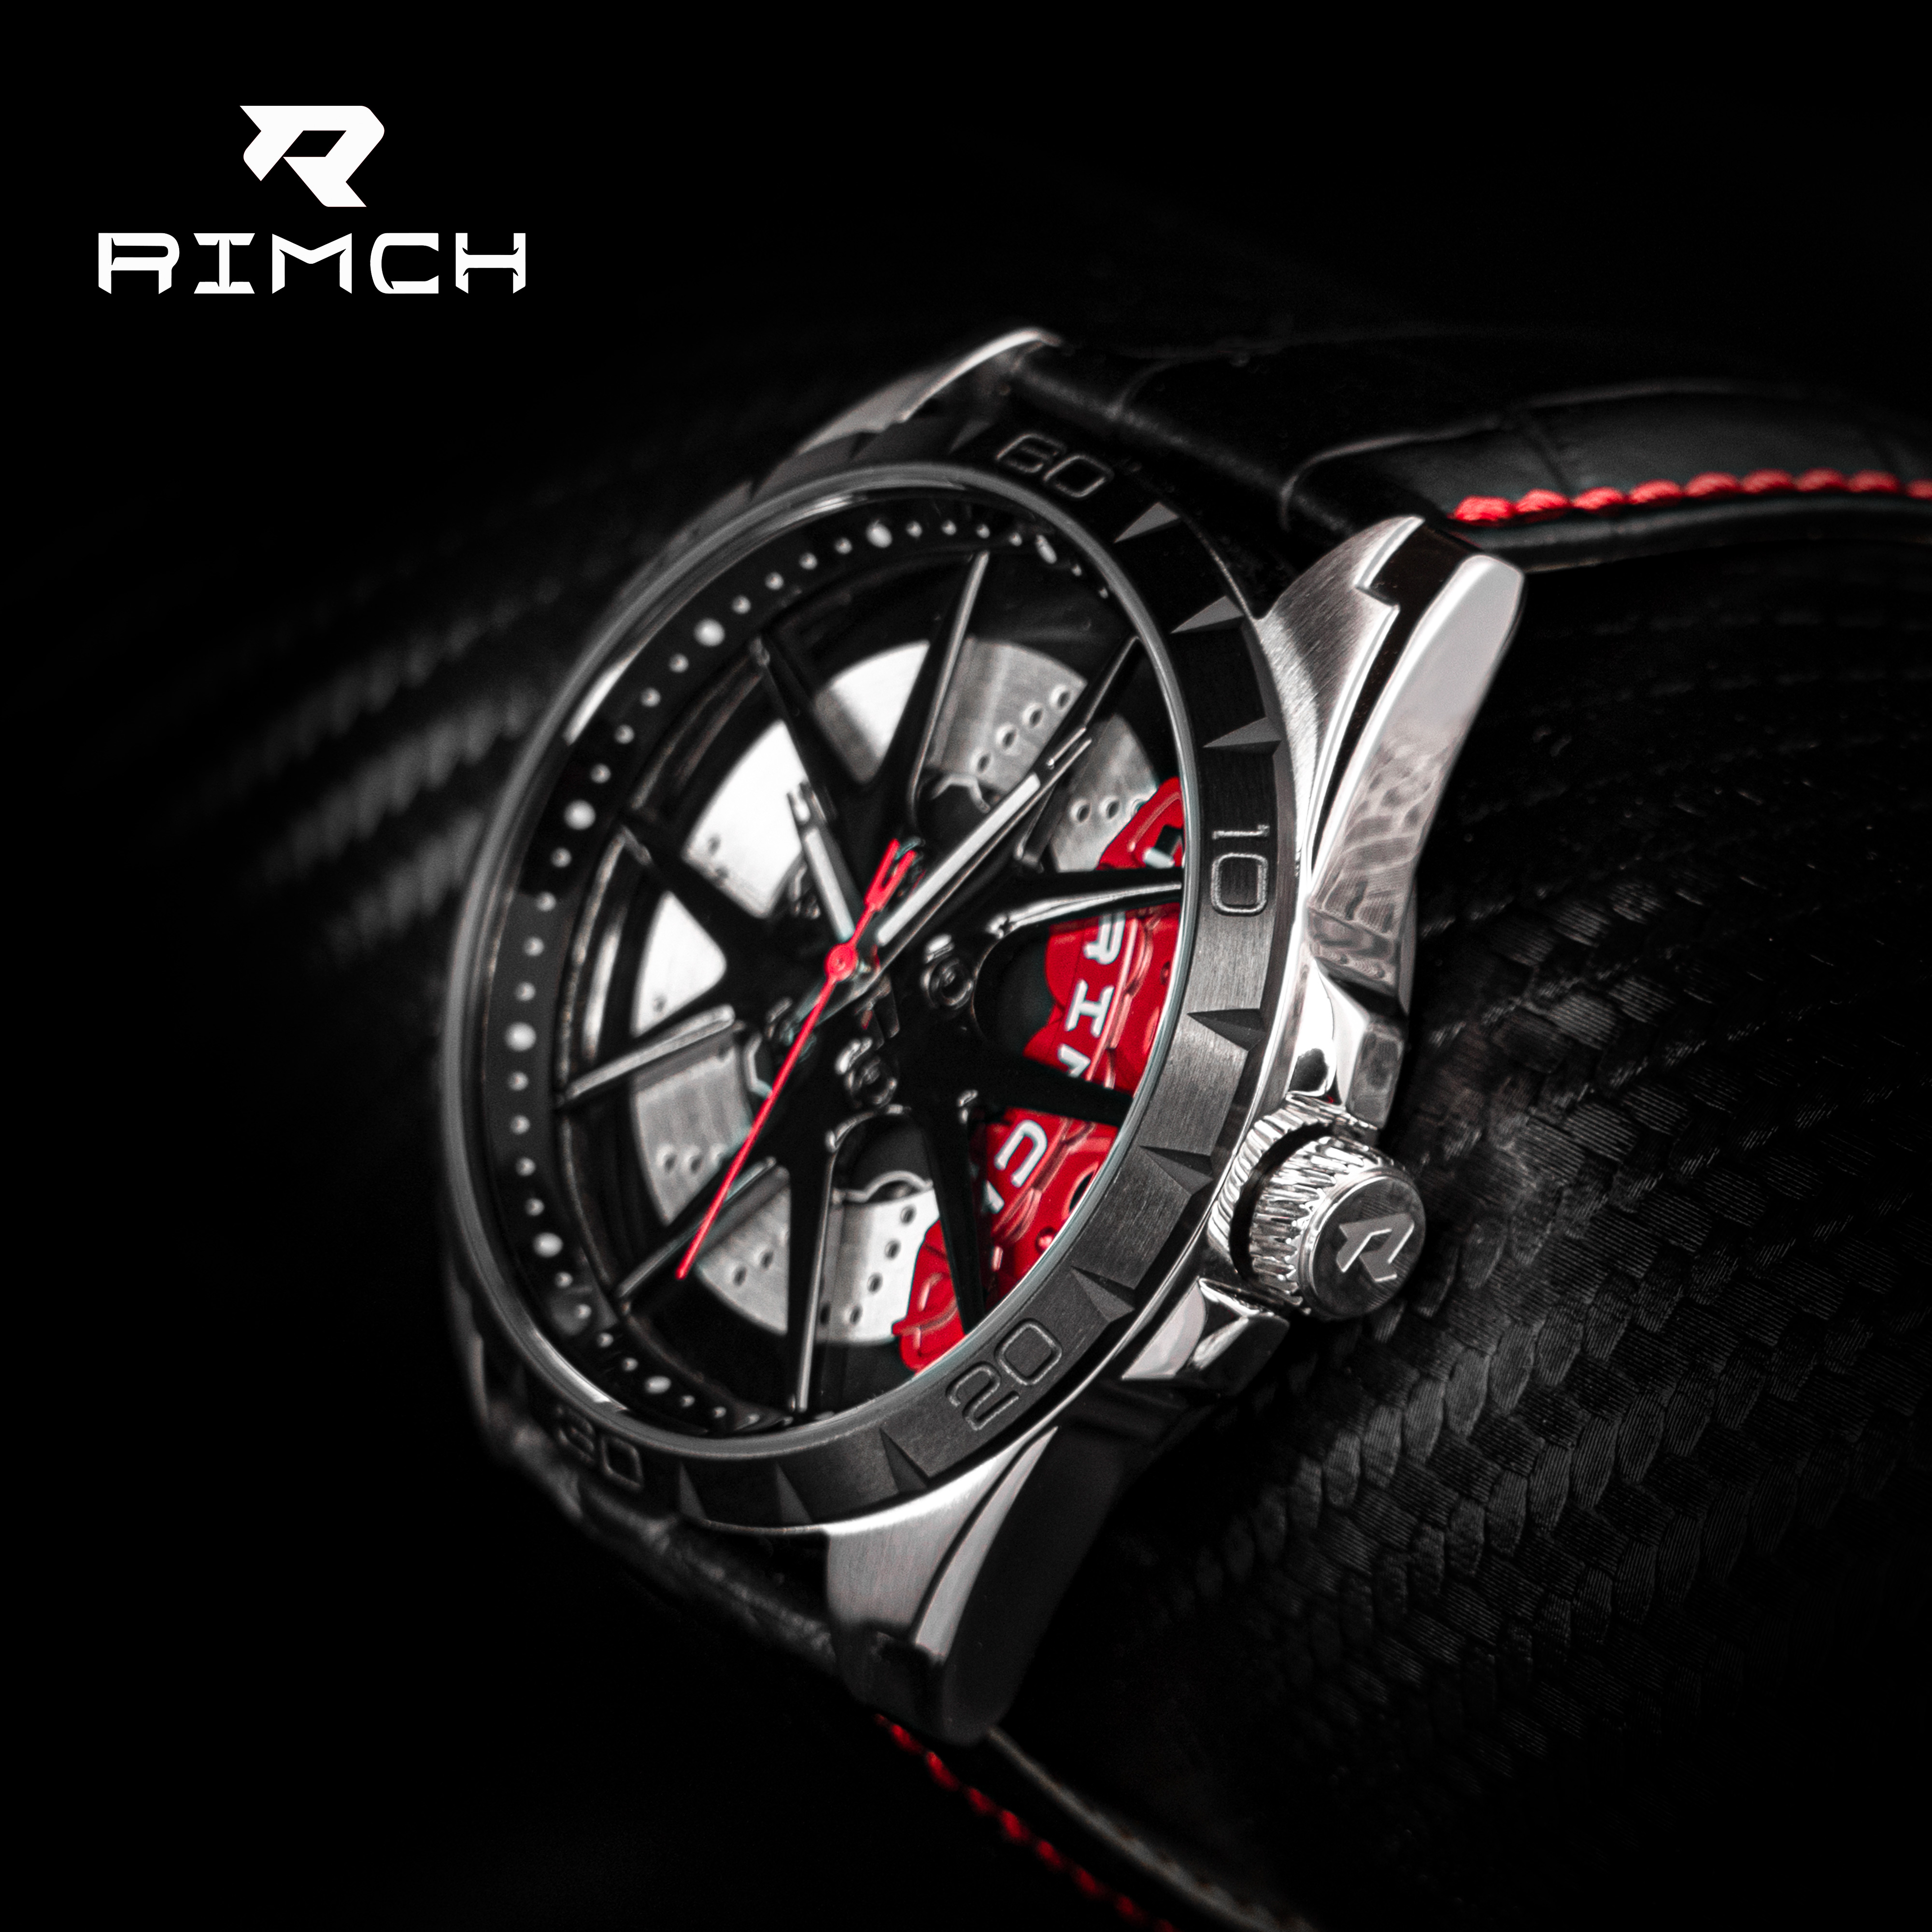 RIMCH Sport Watches for Men Luxury Leather Clock Fashion Cool Rims Design Waterproof 3D DR-CI wheels Watches